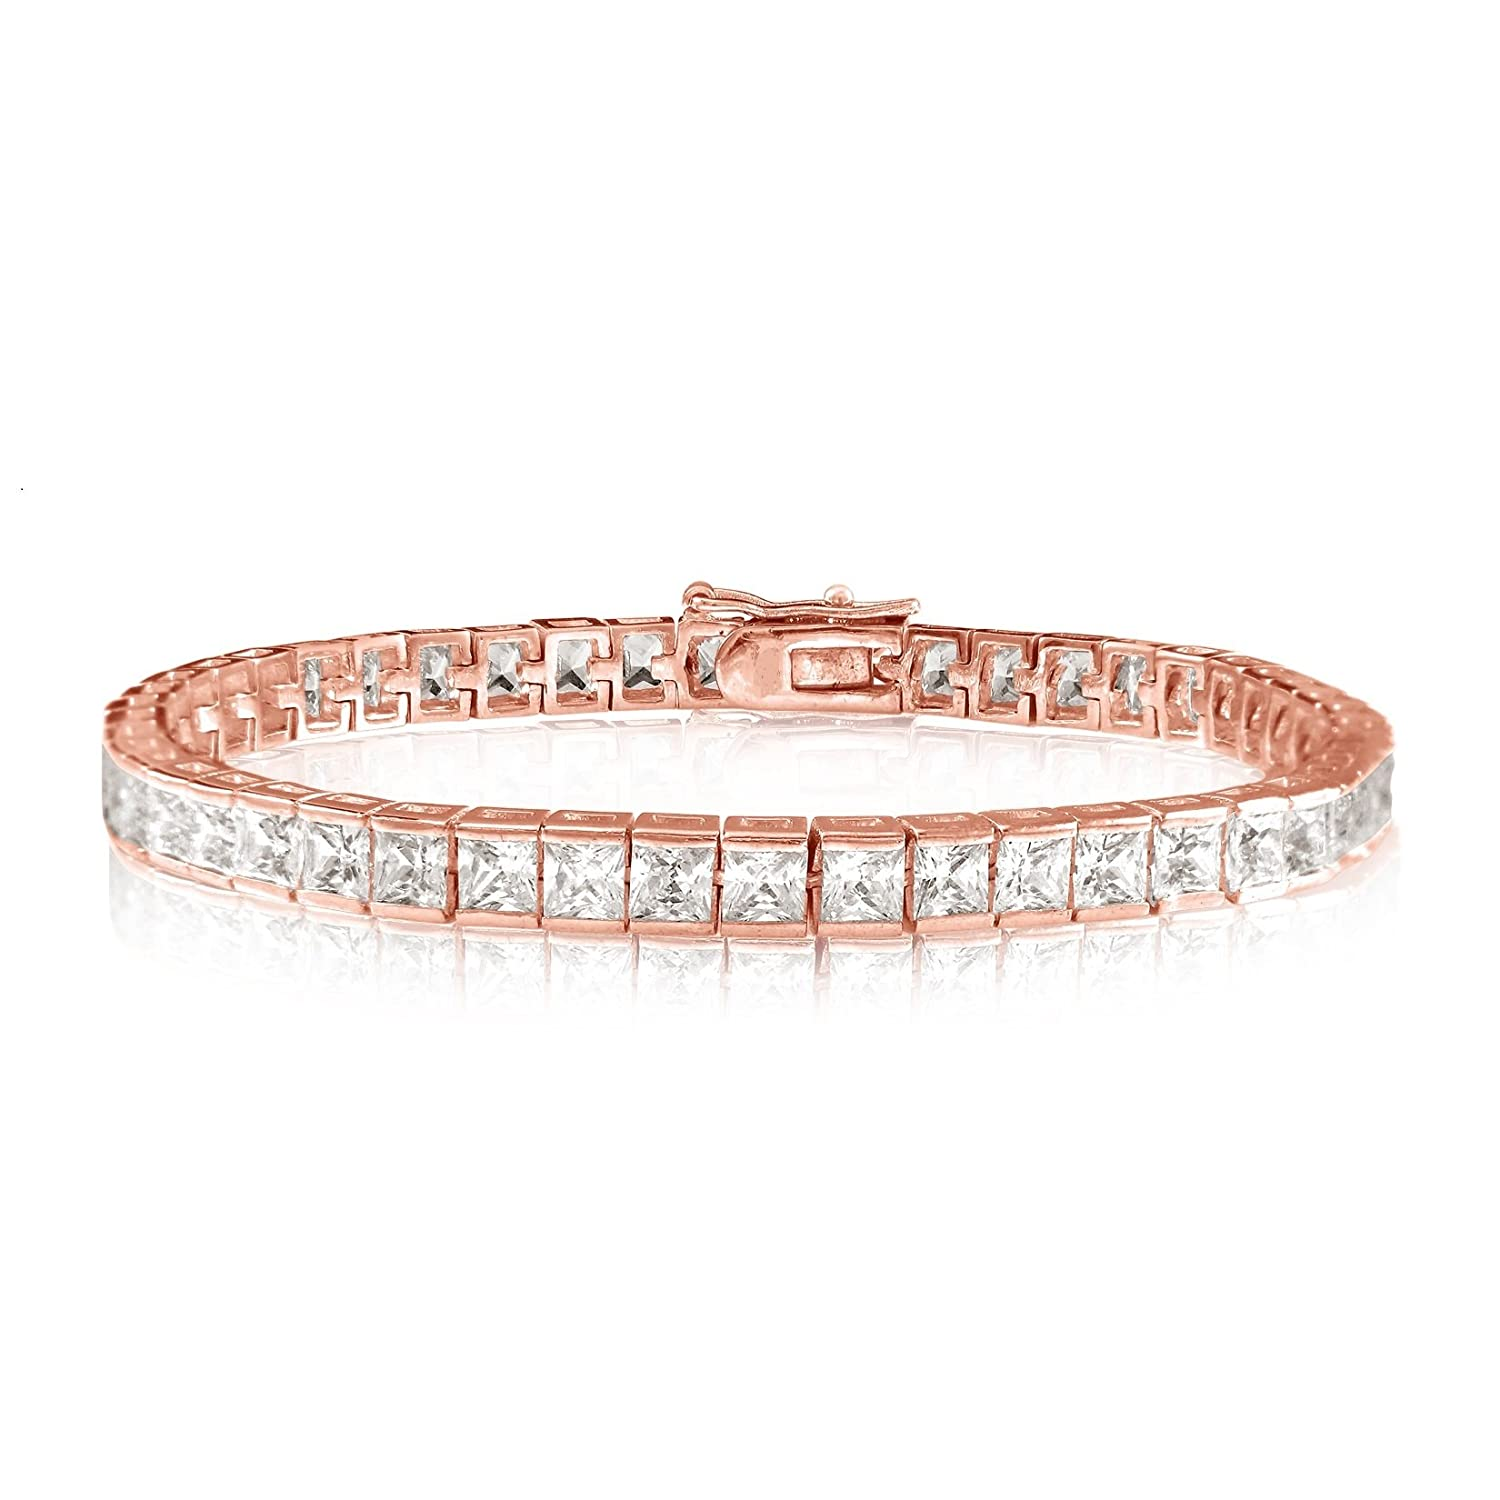 KEZEF Creations Square Princess Cut 4x4mm CZ Tennis Bracelet in Yellow or Rose Gold Overlay or Rhodium Plated Brass Kezef Creations Inc. BTSQ04-06WCZ-BRH